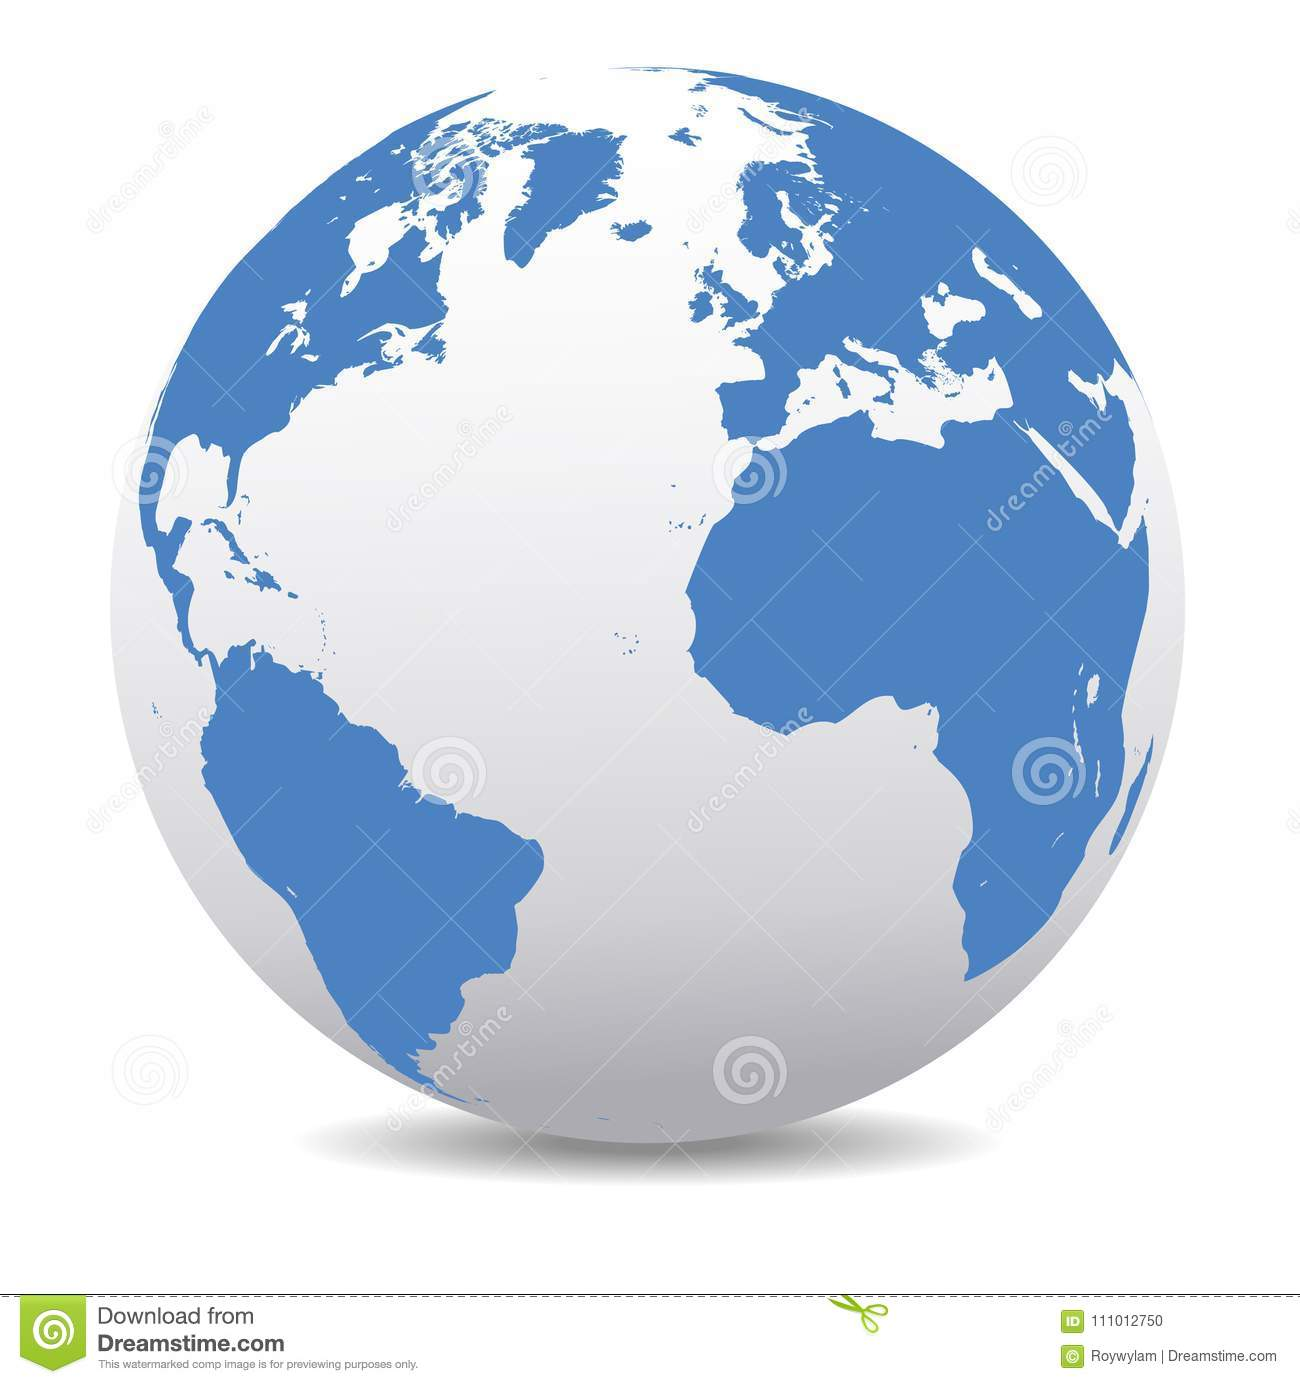 Europe, North And South America, Africa Global World Stock Vector ...